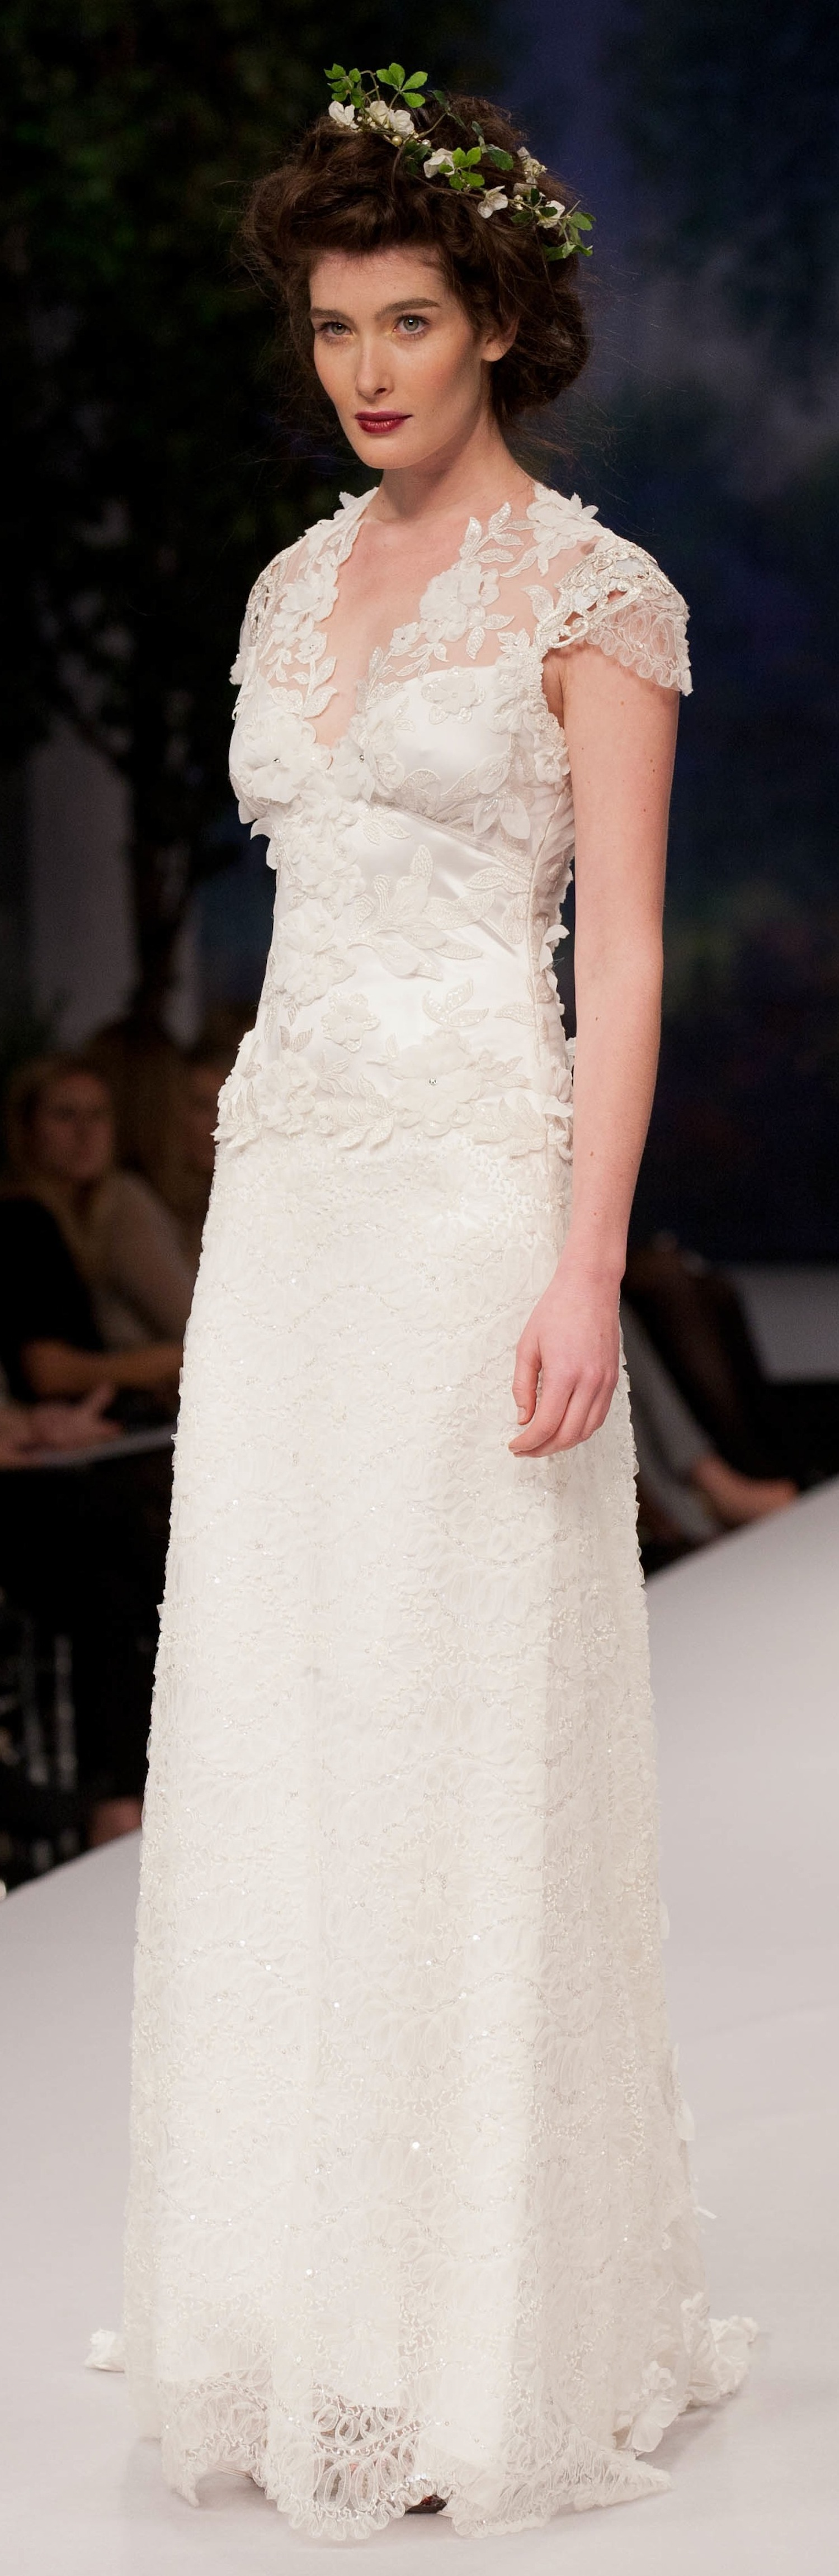 Spring_2012_wedding_dress_claire_pettibone_belle.original